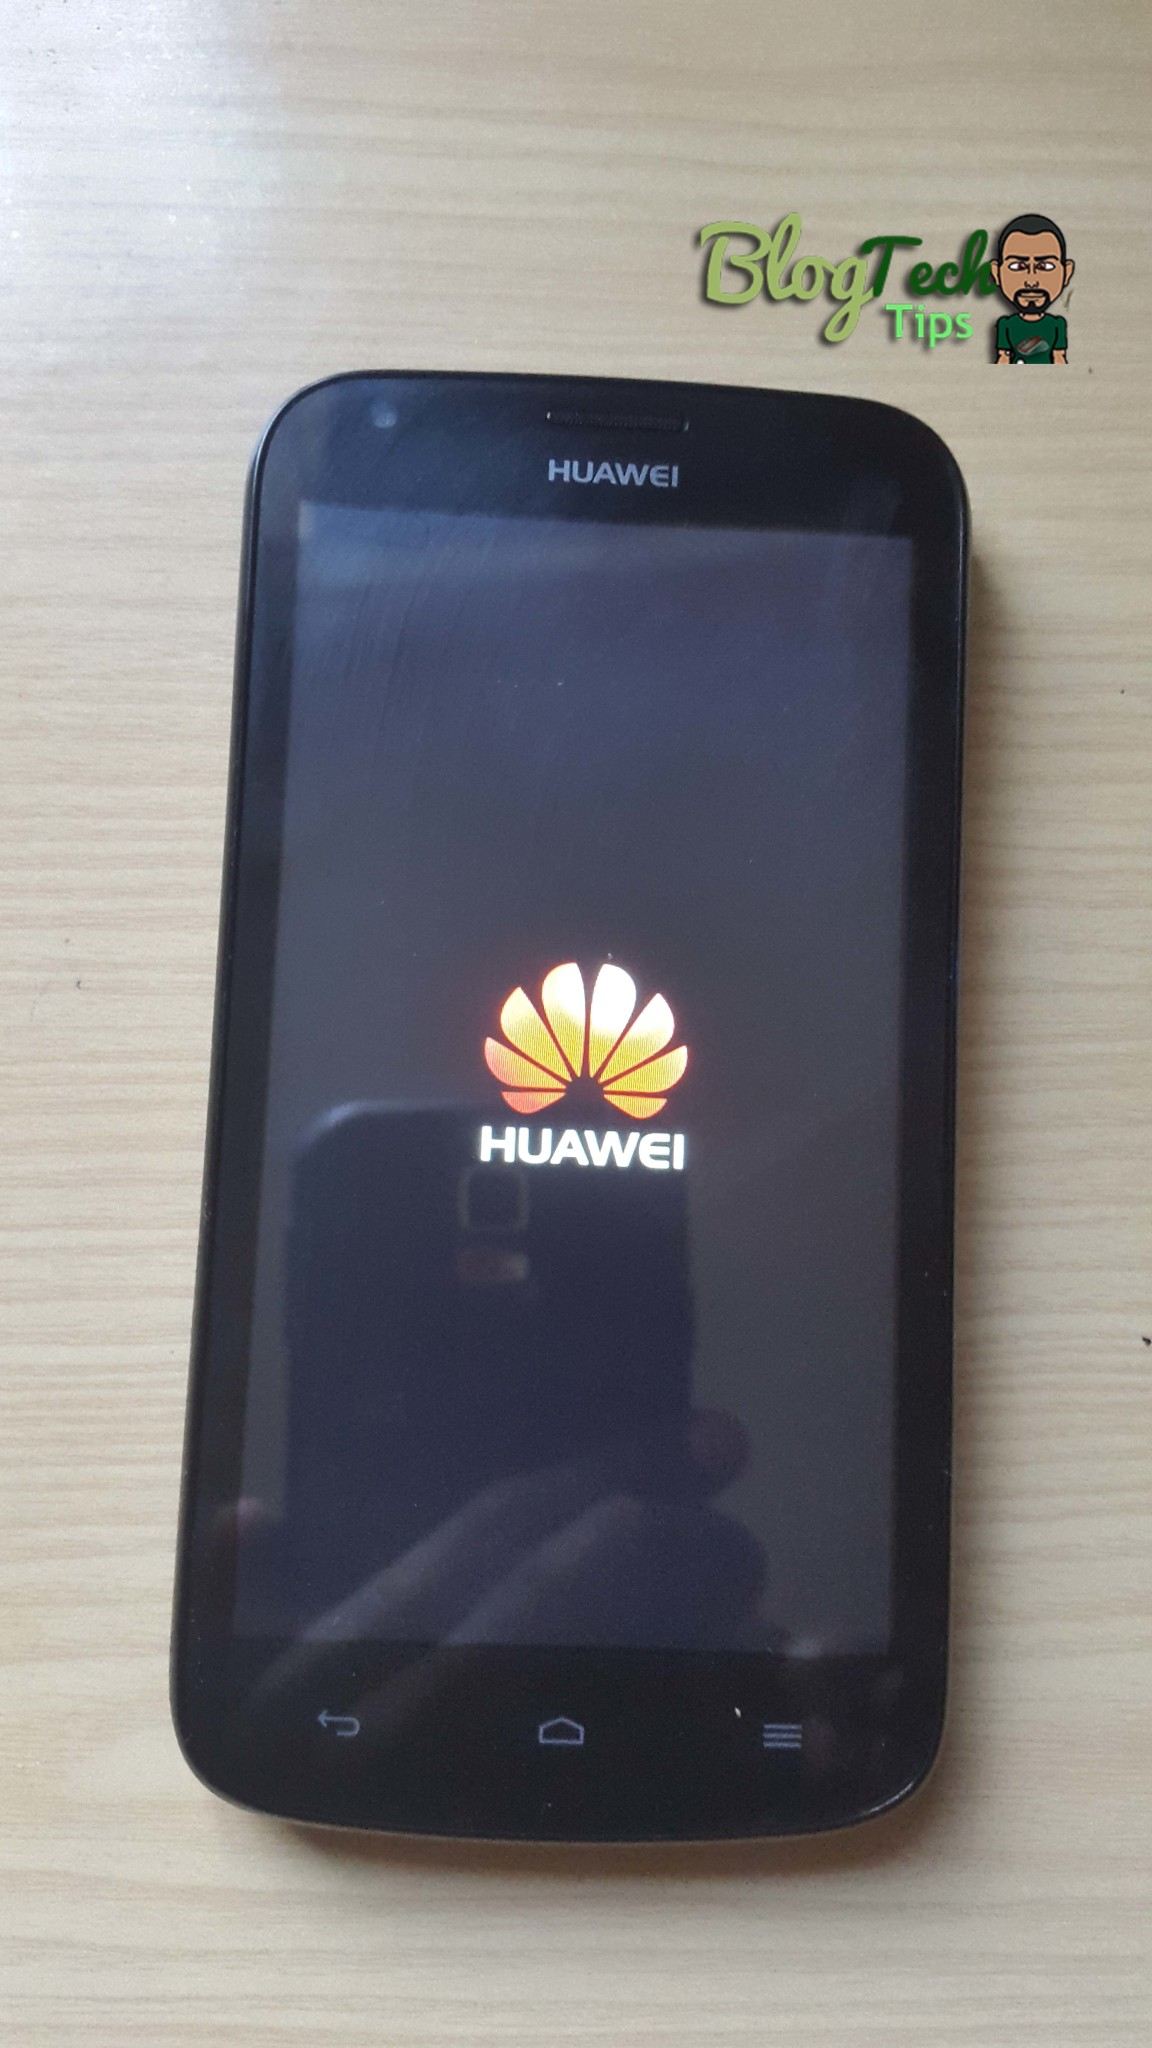 Huawei Android Phone Stuck on startup or not accepting